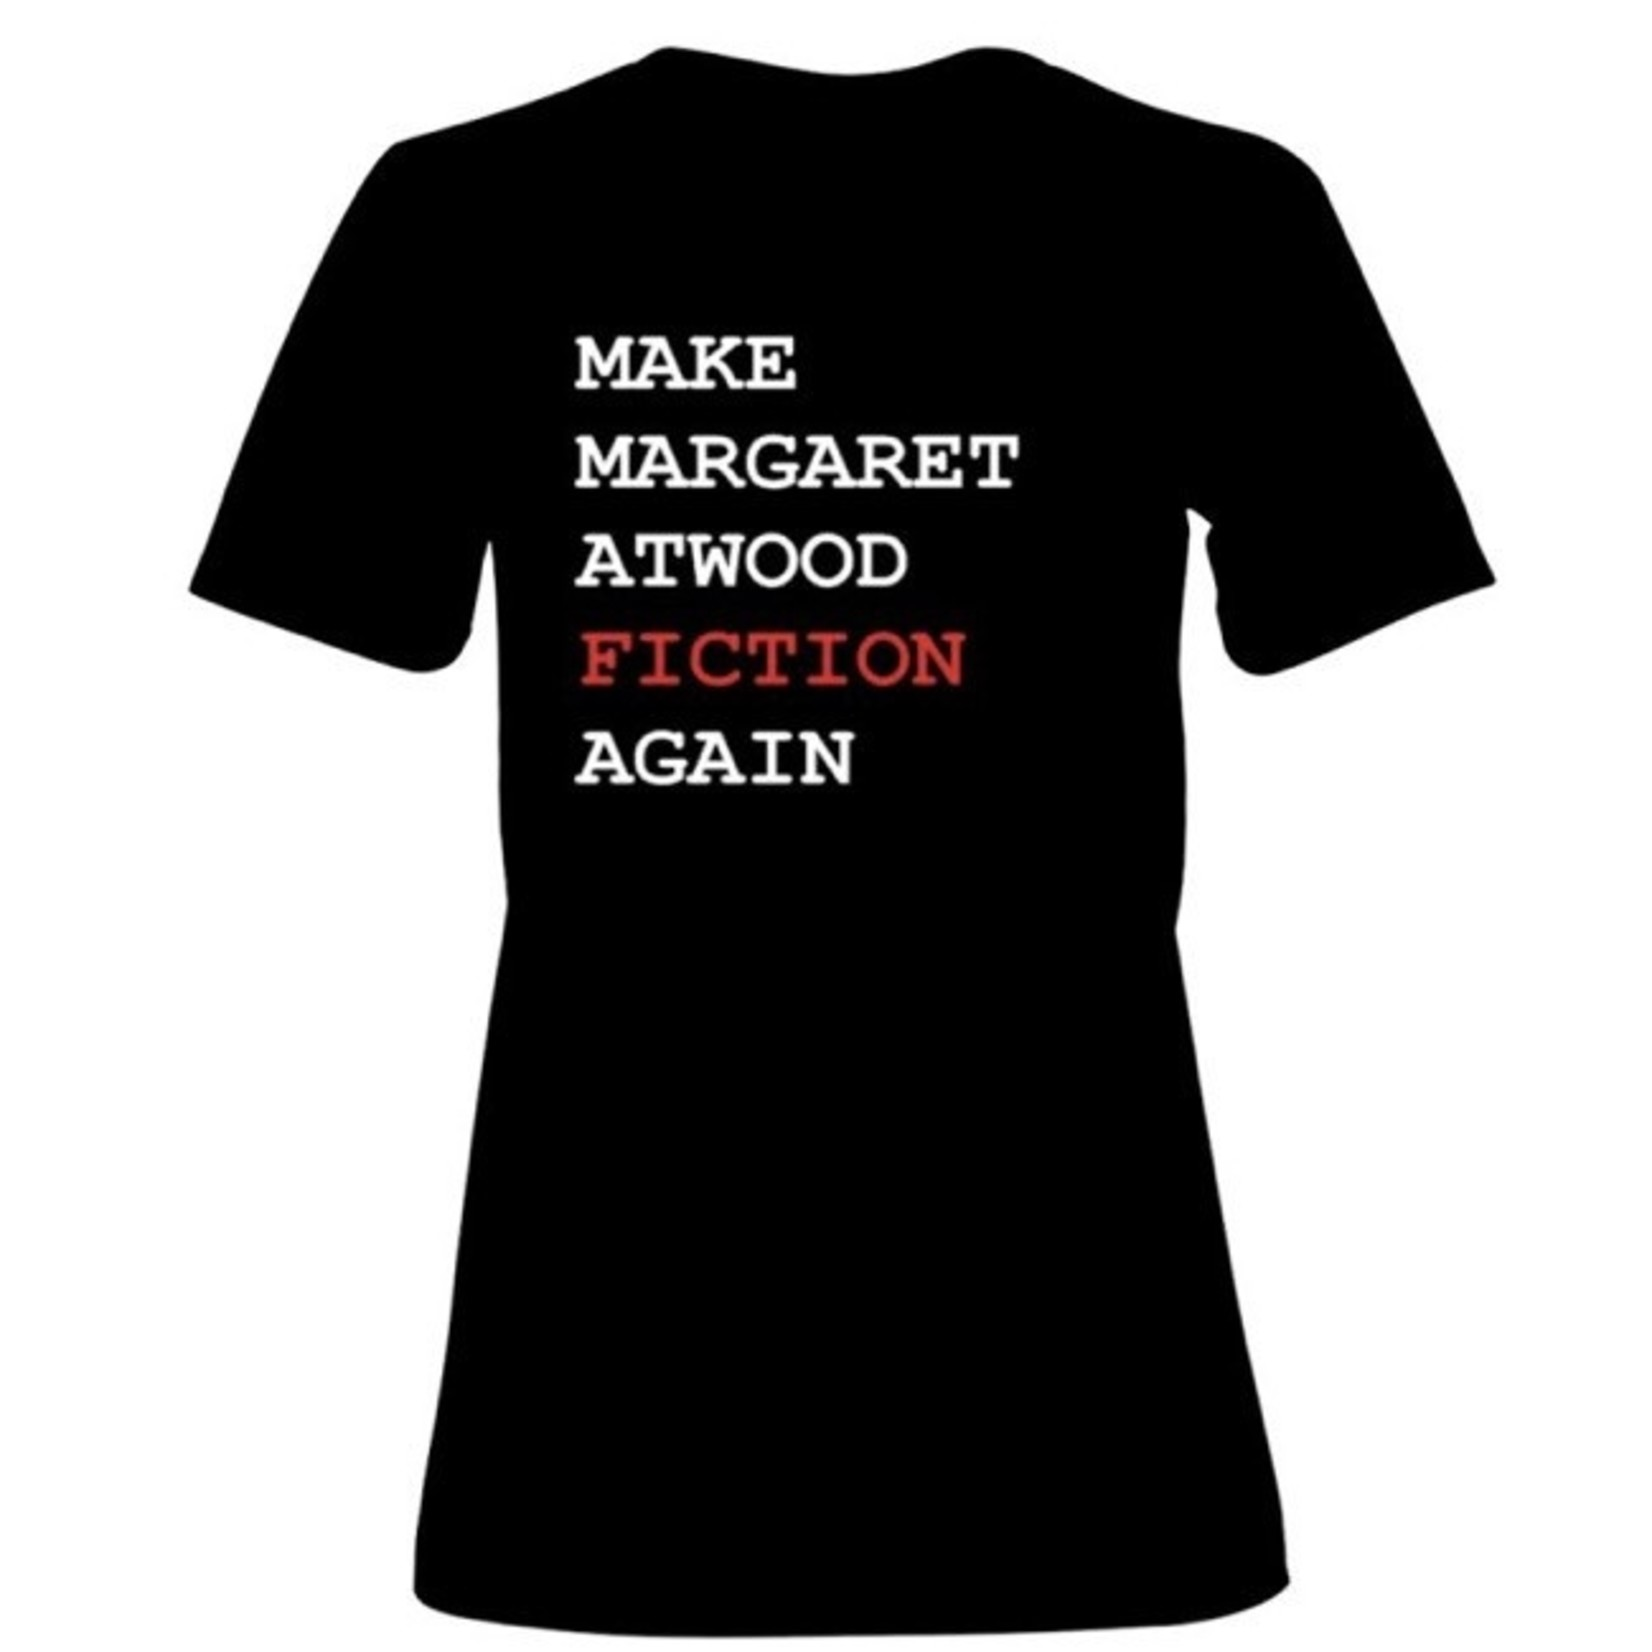 Bad Annie's T-Shirt - Make Margaret Atwood Fiction Again